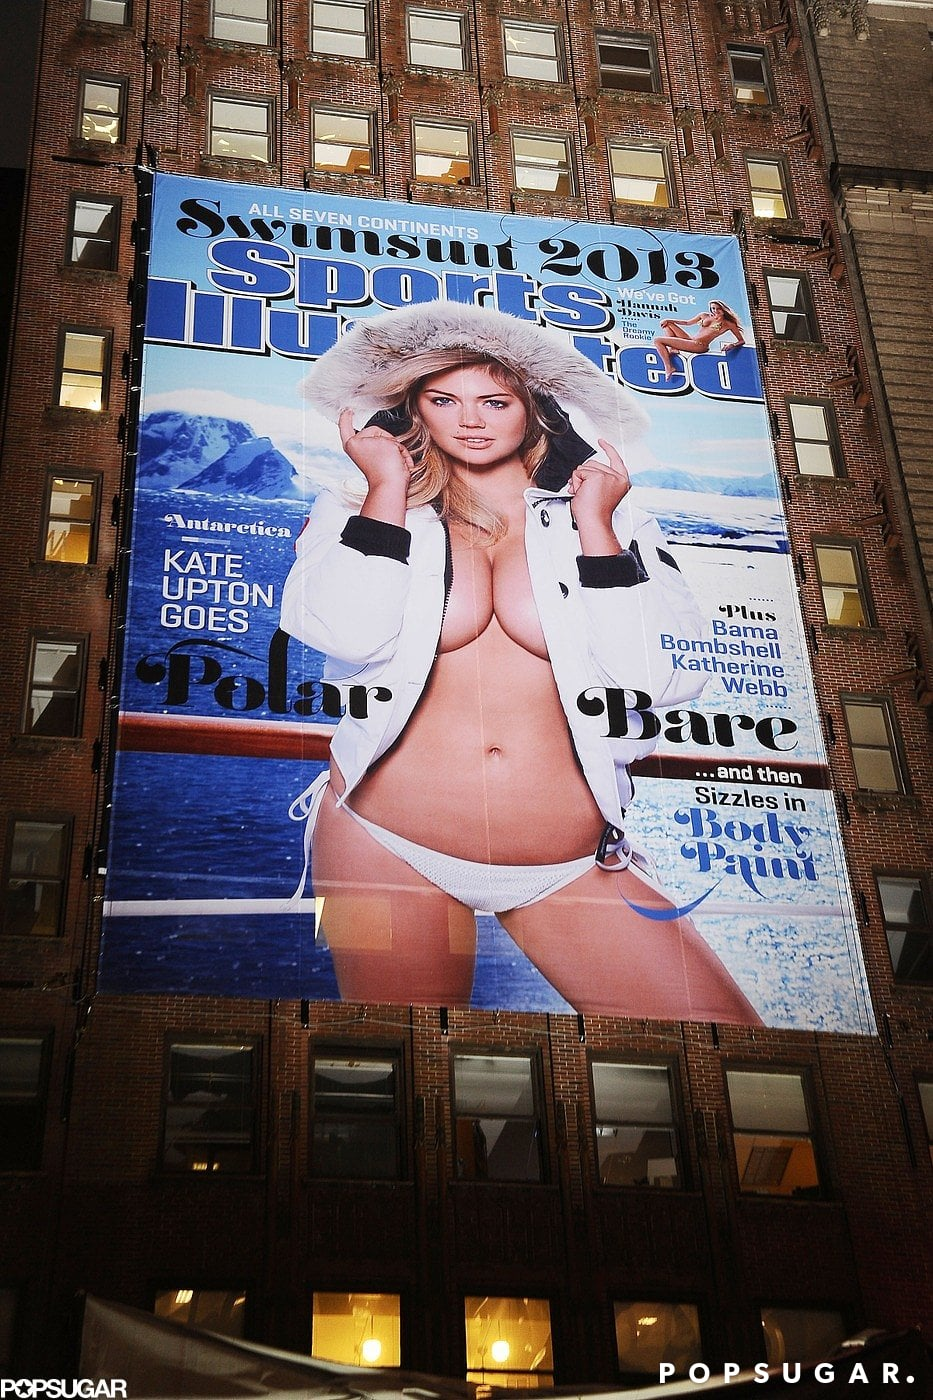 Kate Upton unveiled her Sports Illustrated Swimsuit Edition cover.